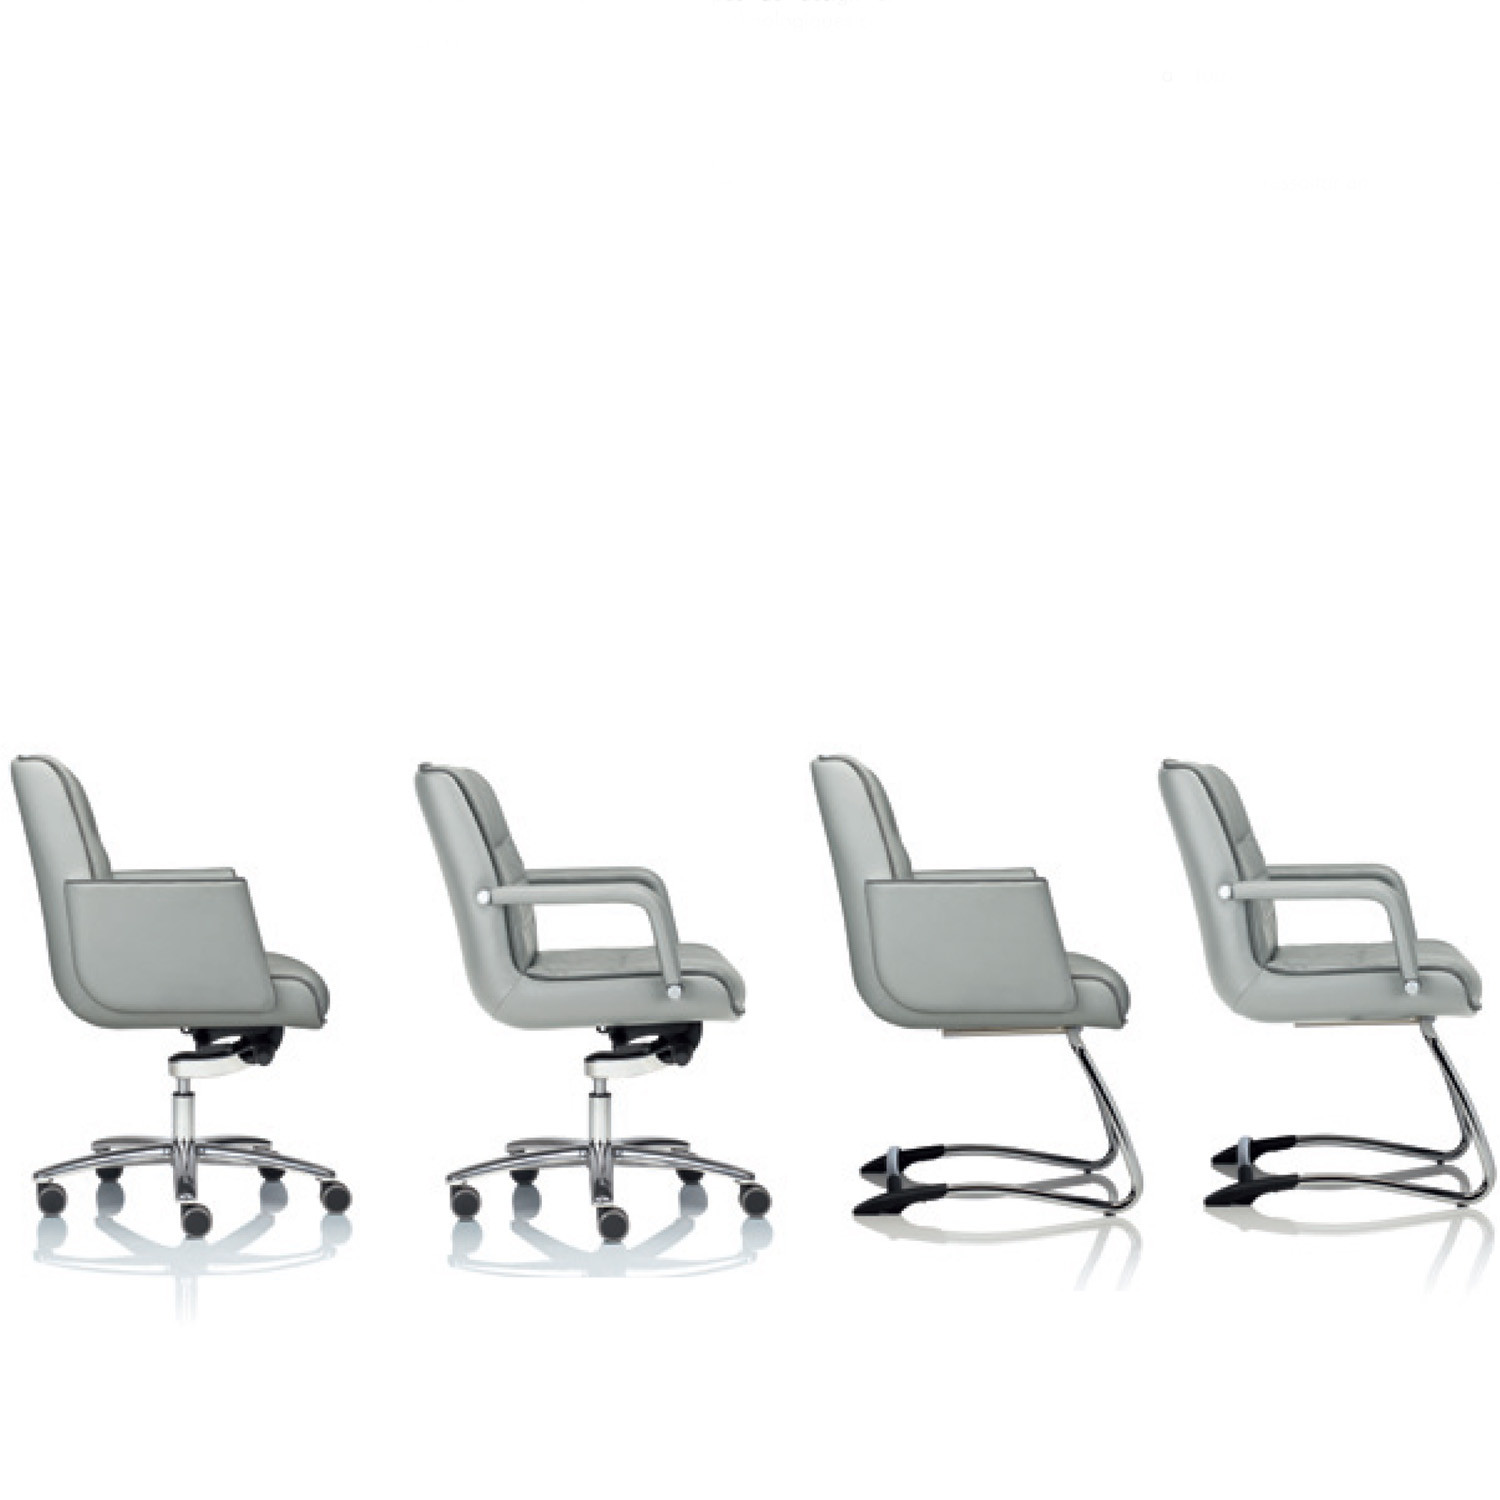 Mr Big Boardroom Chairs